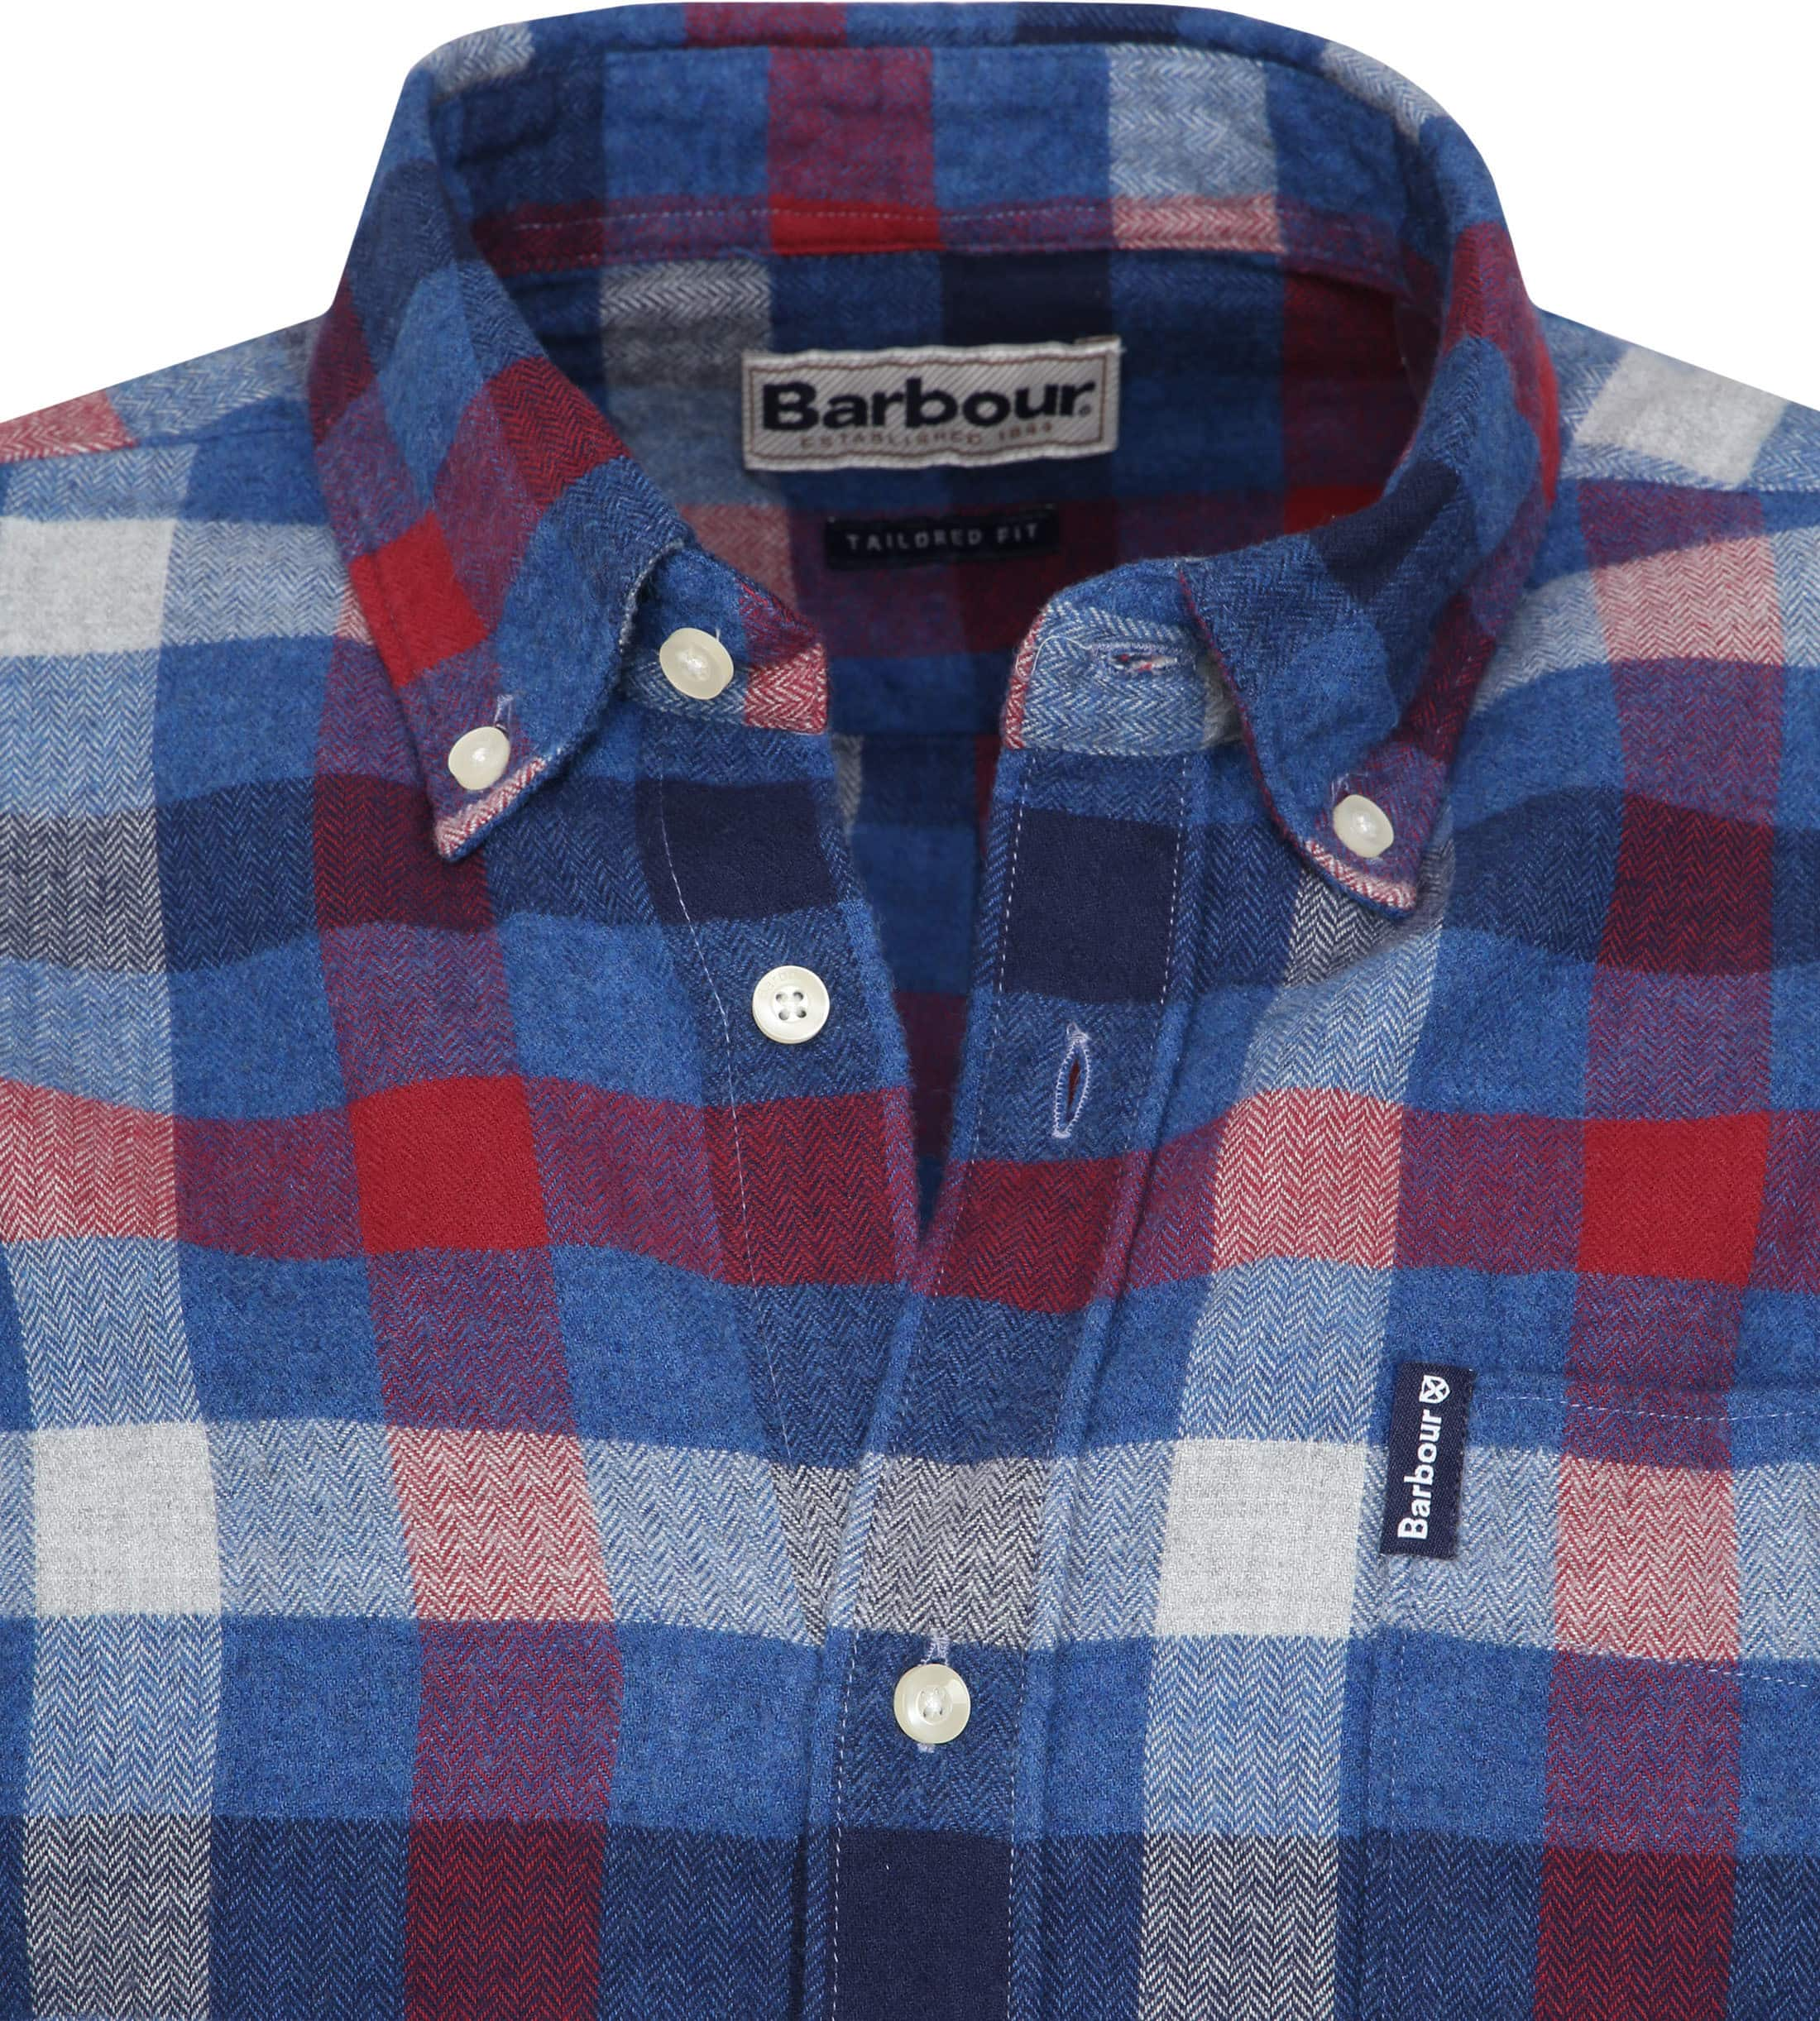 Barbour Shirt Country Check foto 1